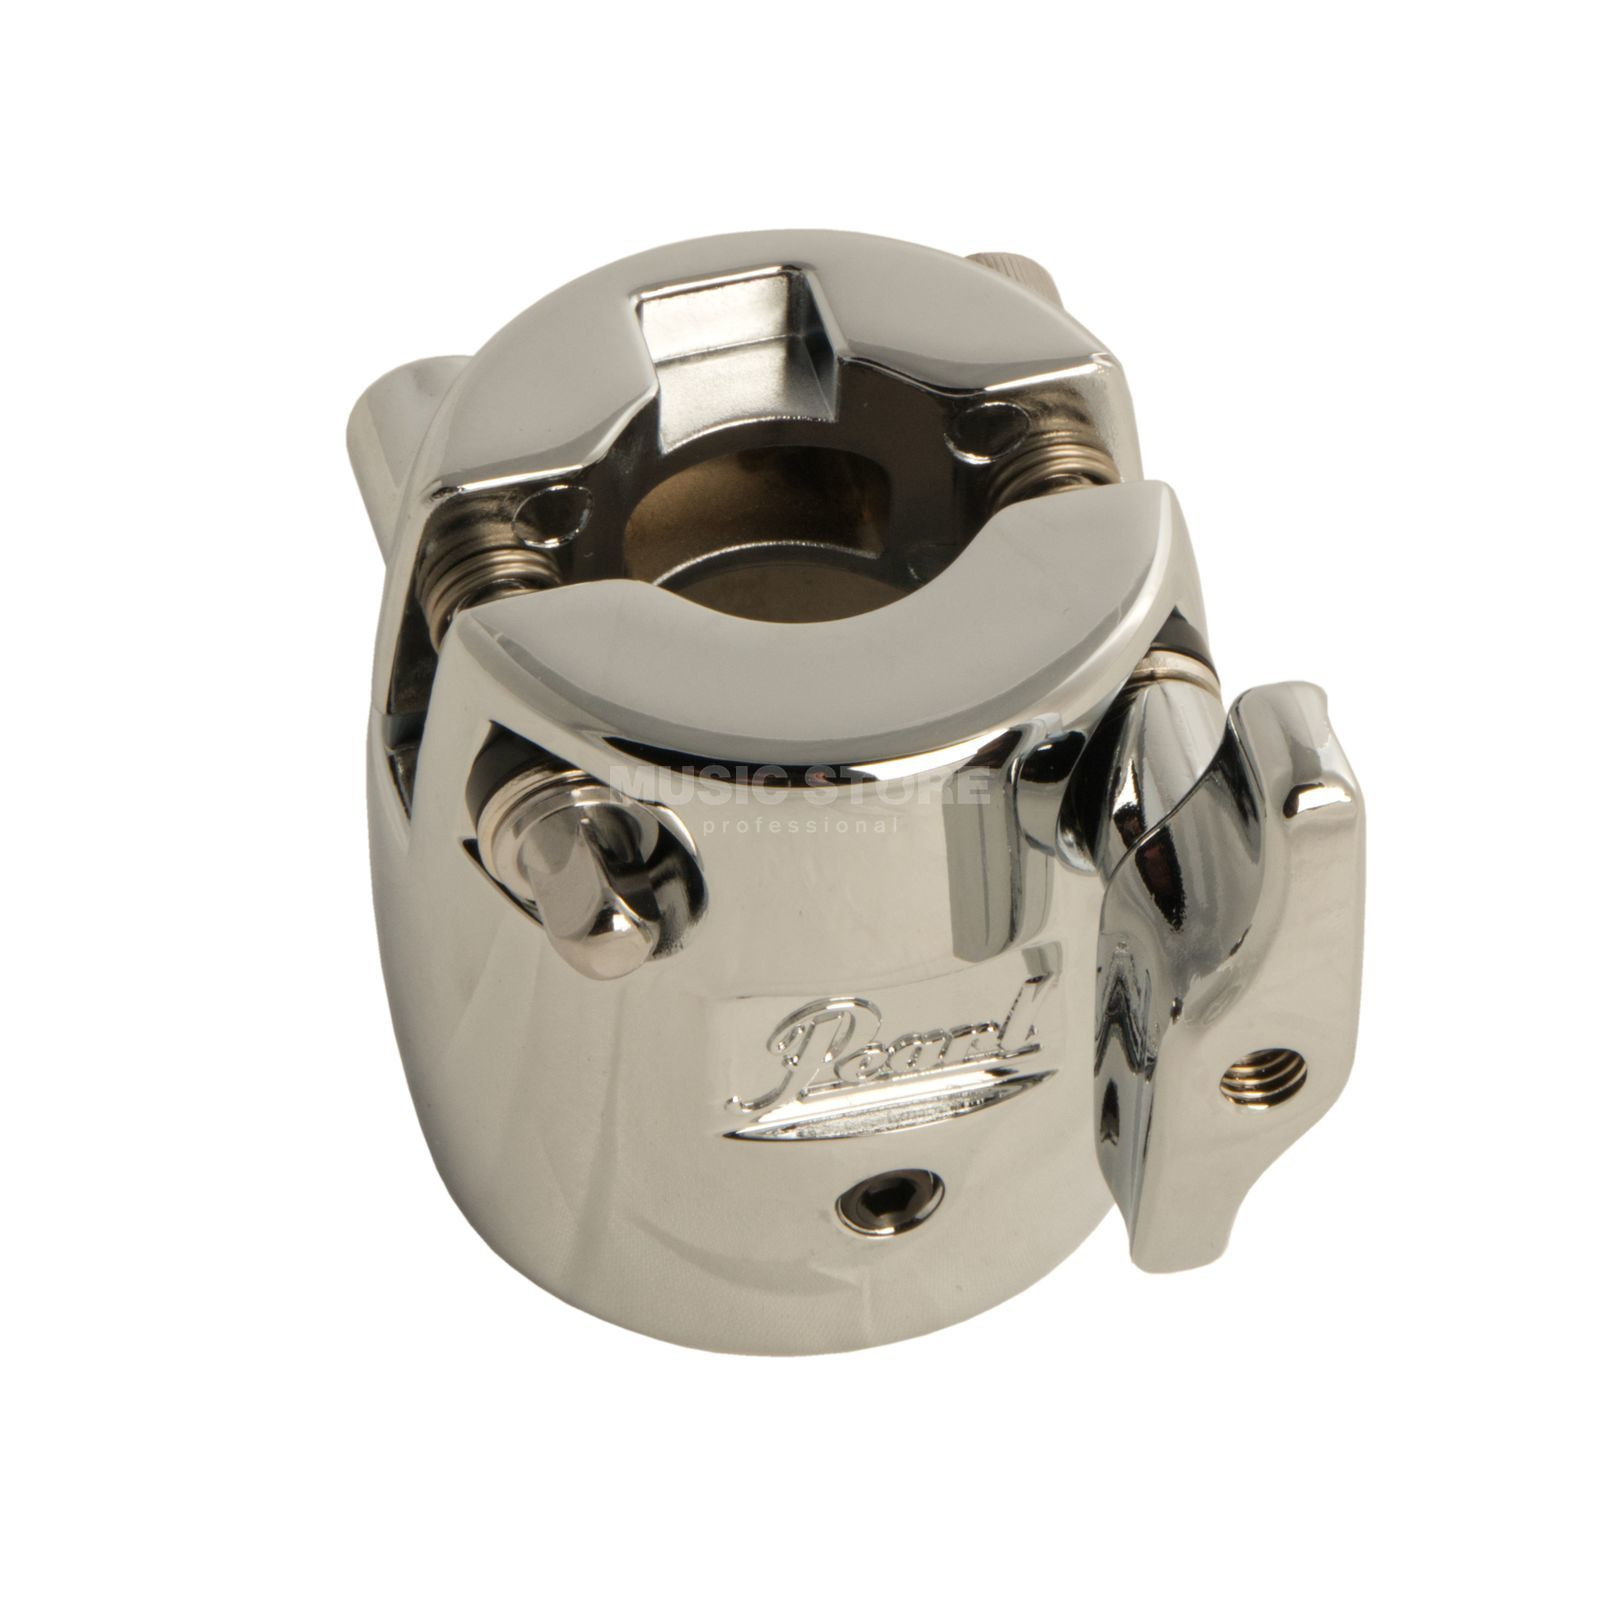 Pearl Pipe Clamp PCL-100, voor DR 503 / 501 Productafbeelding